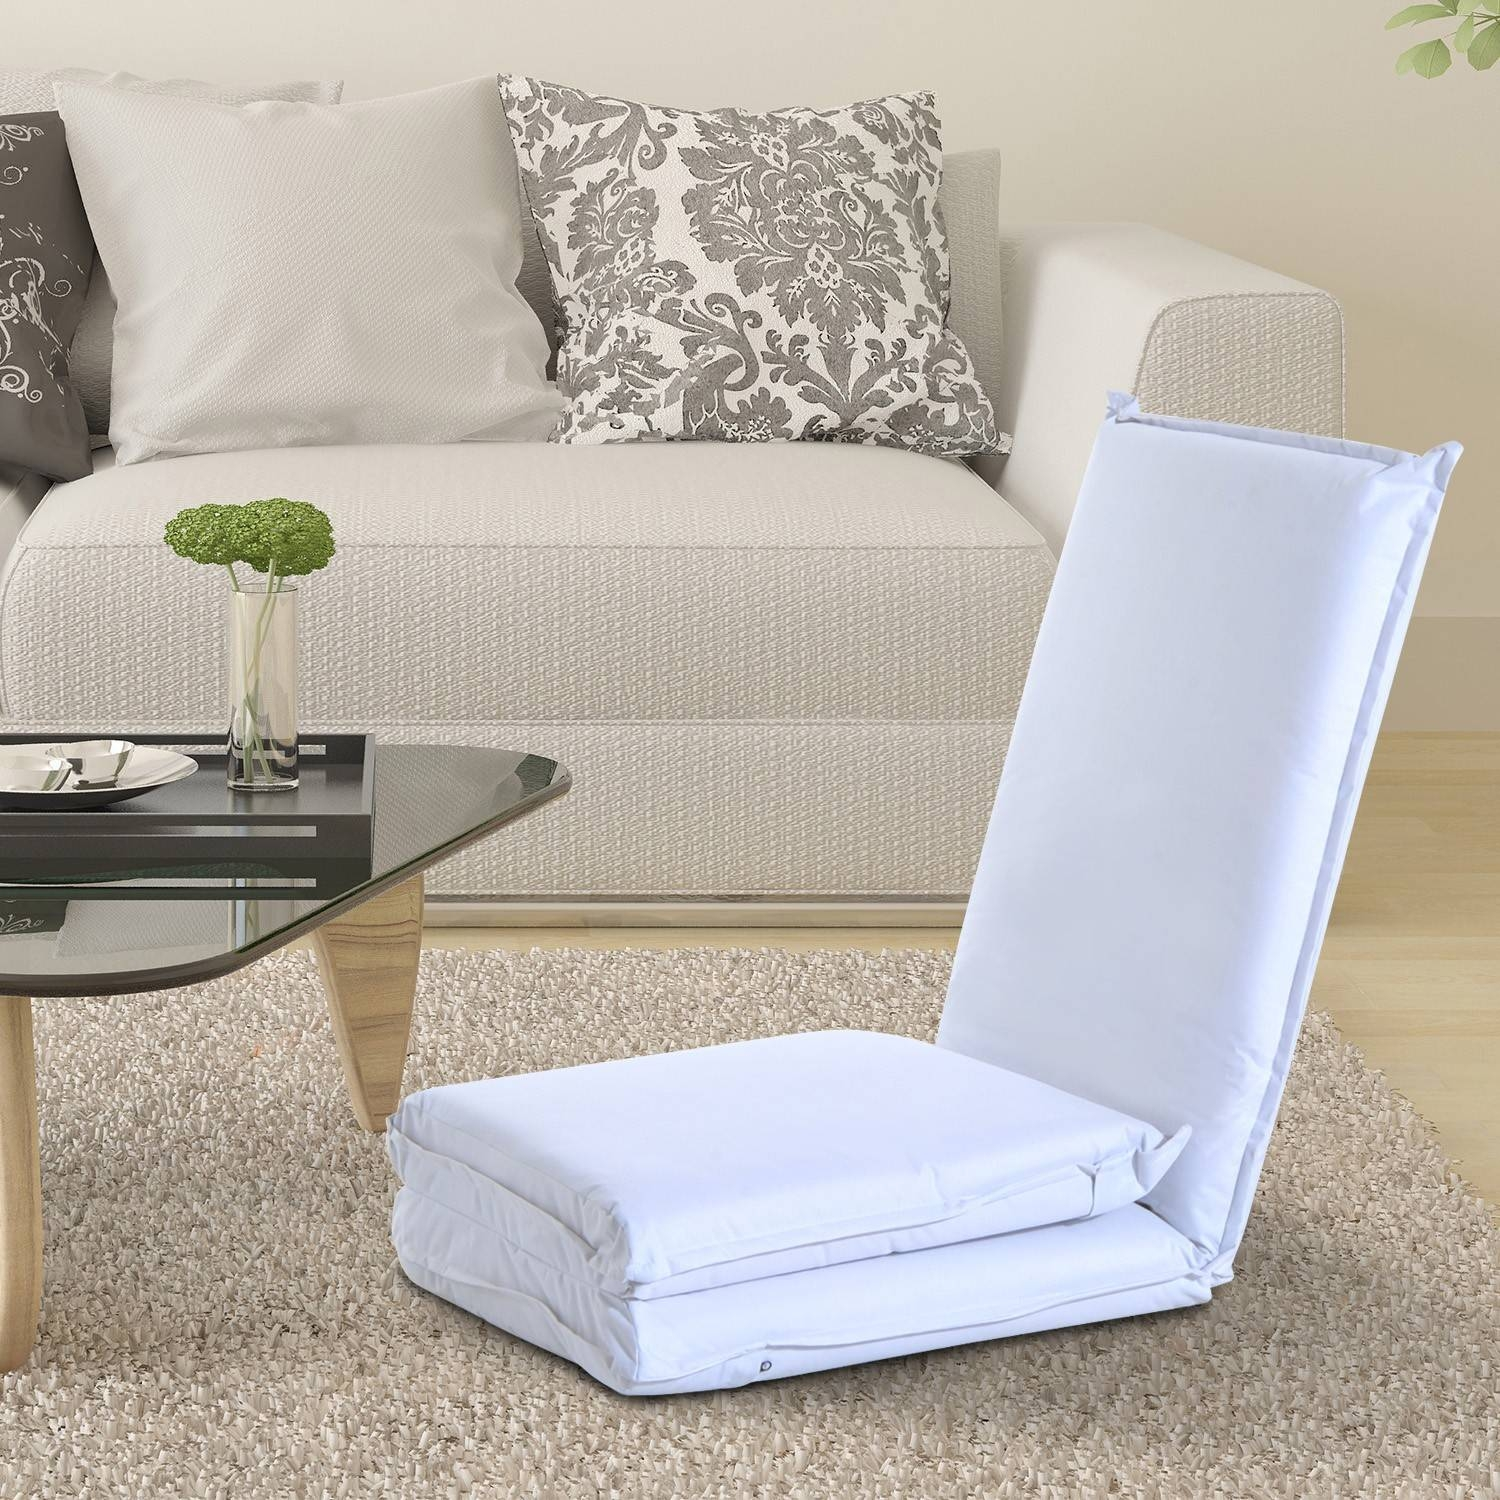 Homcom Lazy Lounge Chair-Cream White |Aosom.co.uk pertaining to Lazy Sofa Chairs (Image 11 of 15)